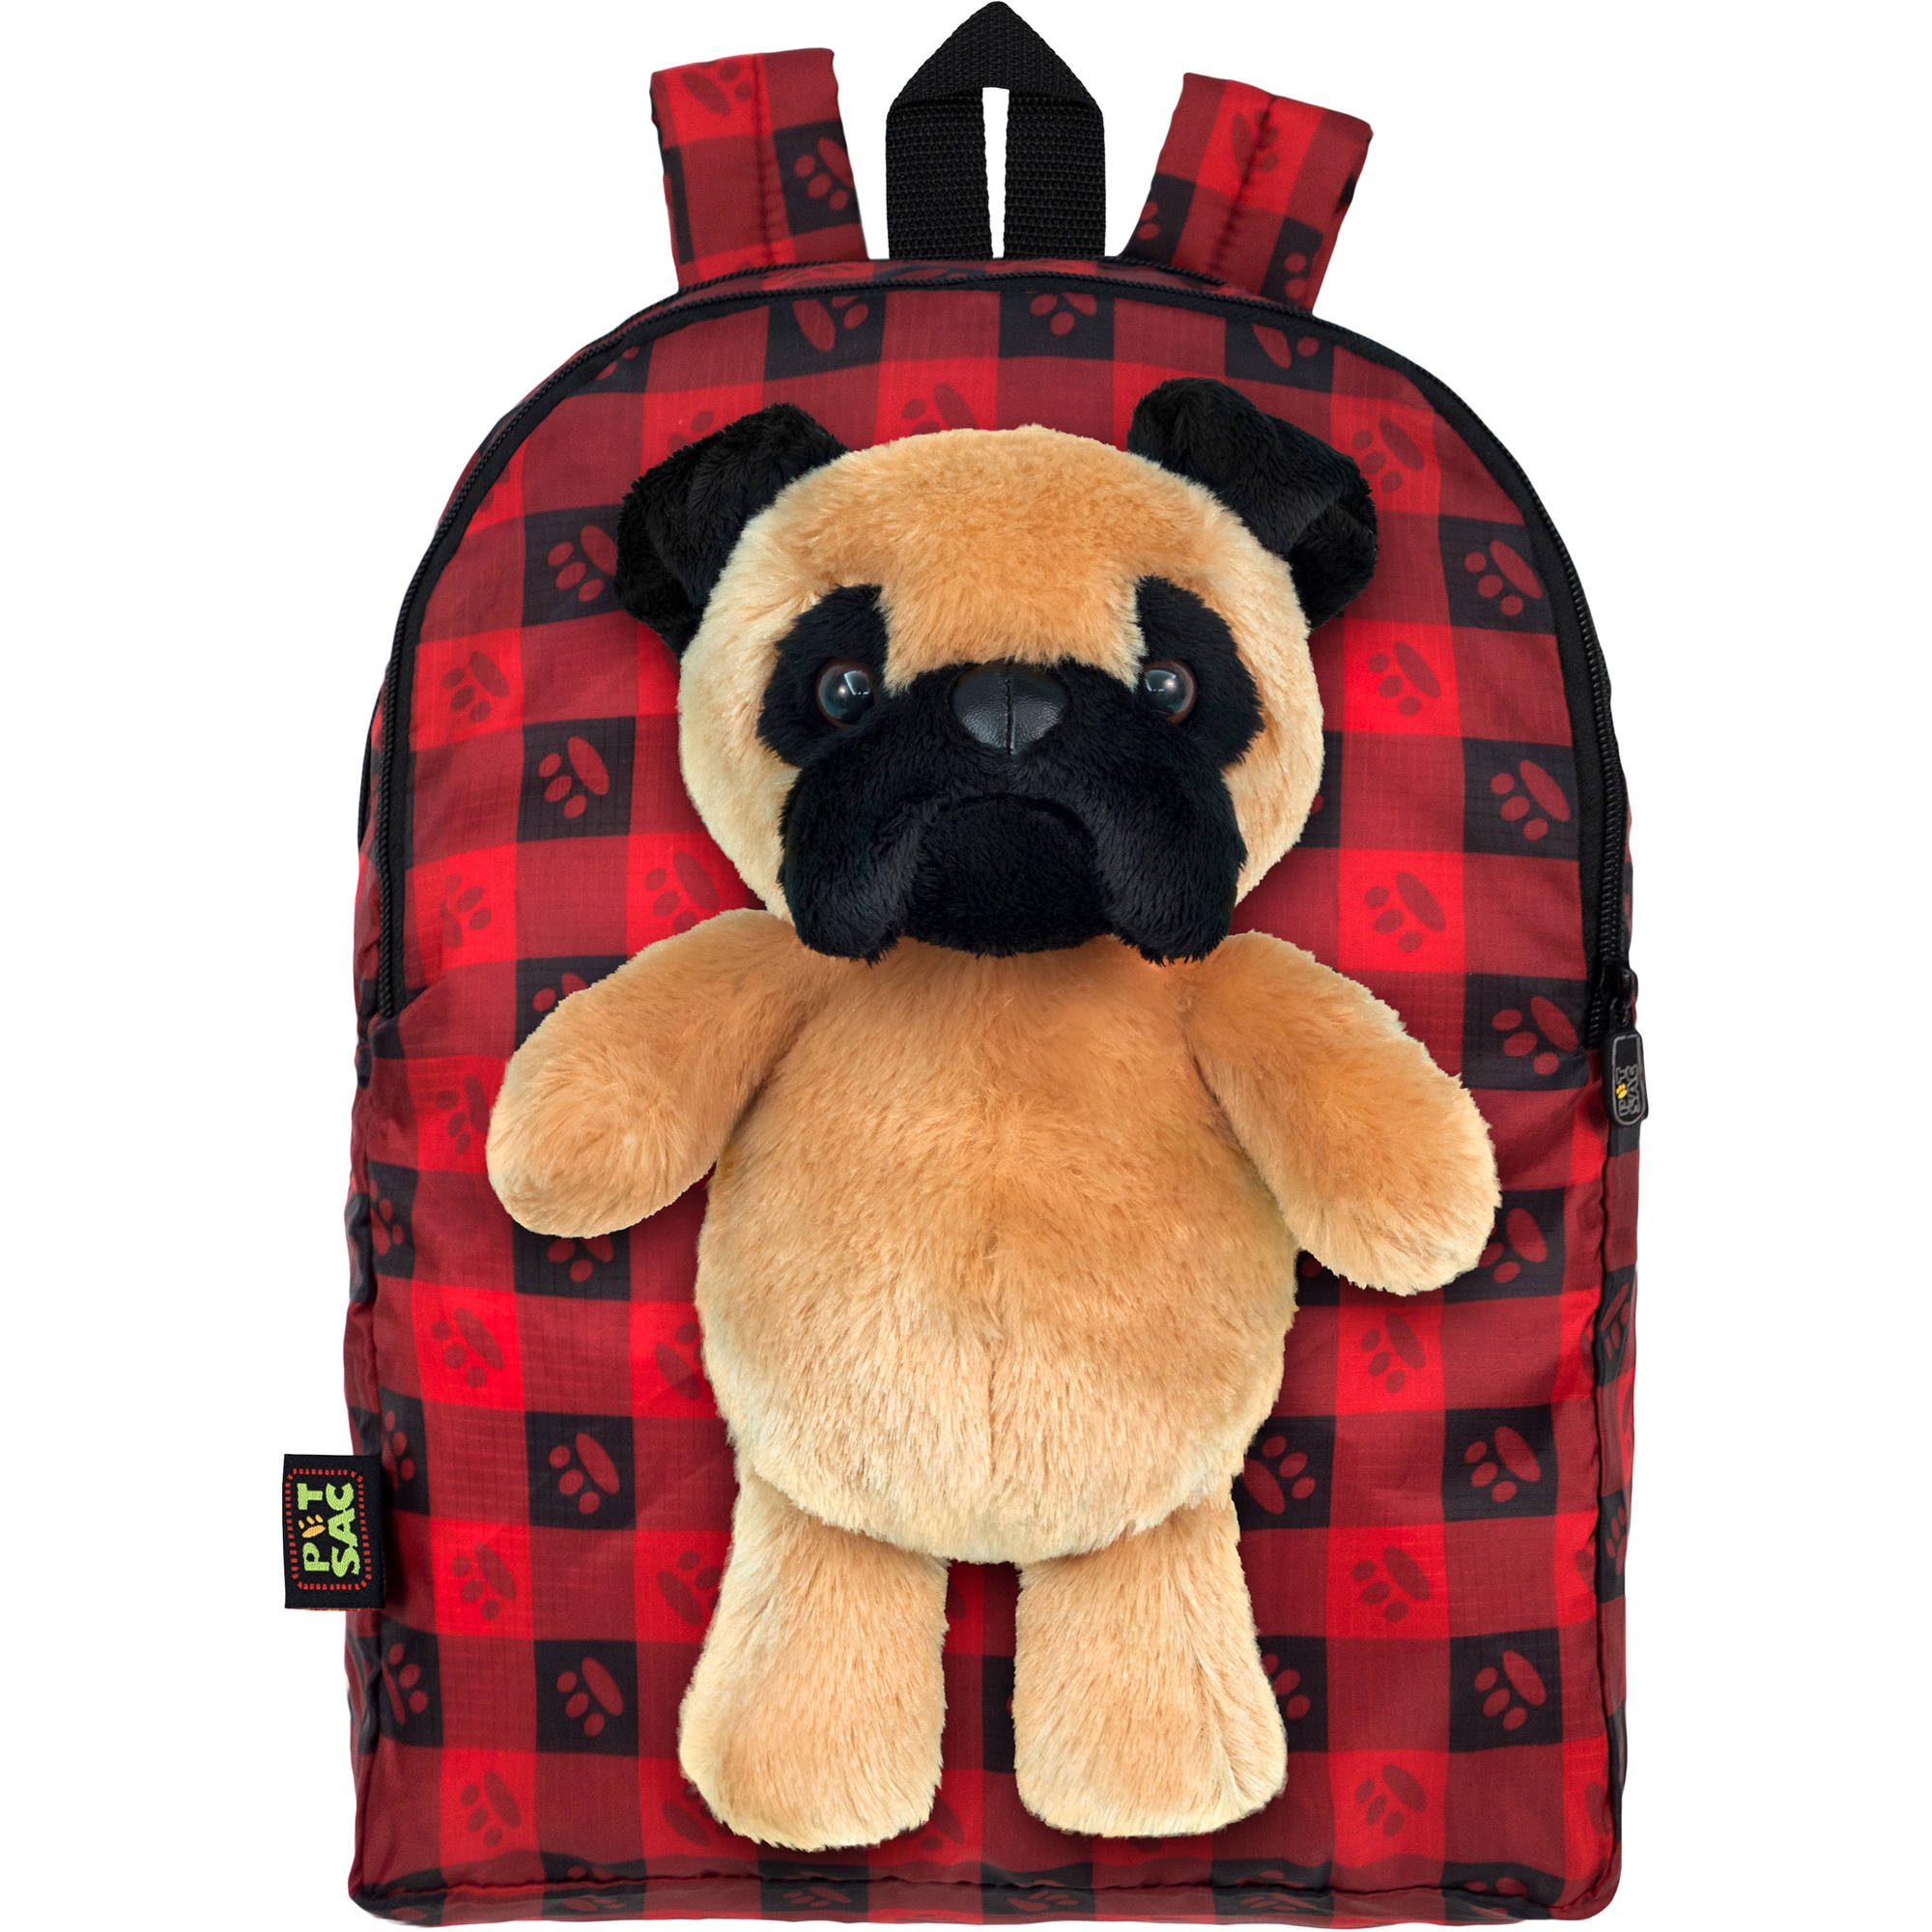 PetSac Tug the Pug with Red Plaid Printed Backpack